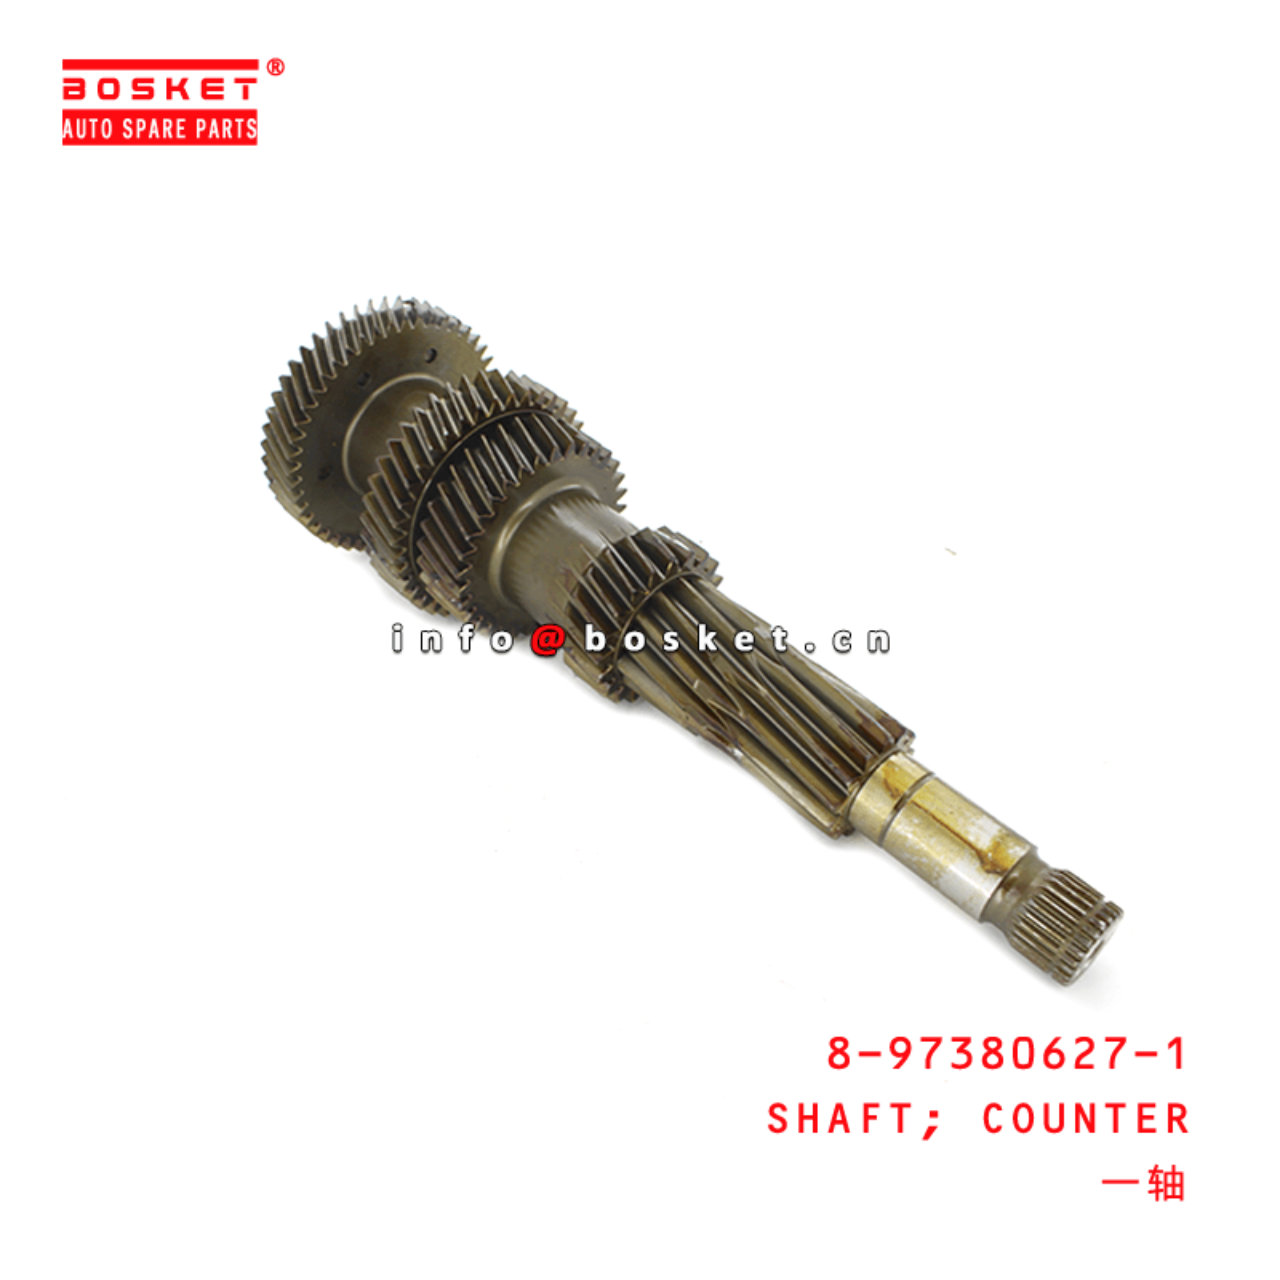 8-97380627-1 Counter Shaft 8973806271 Suitable for ISUZU MYY6S NPR75